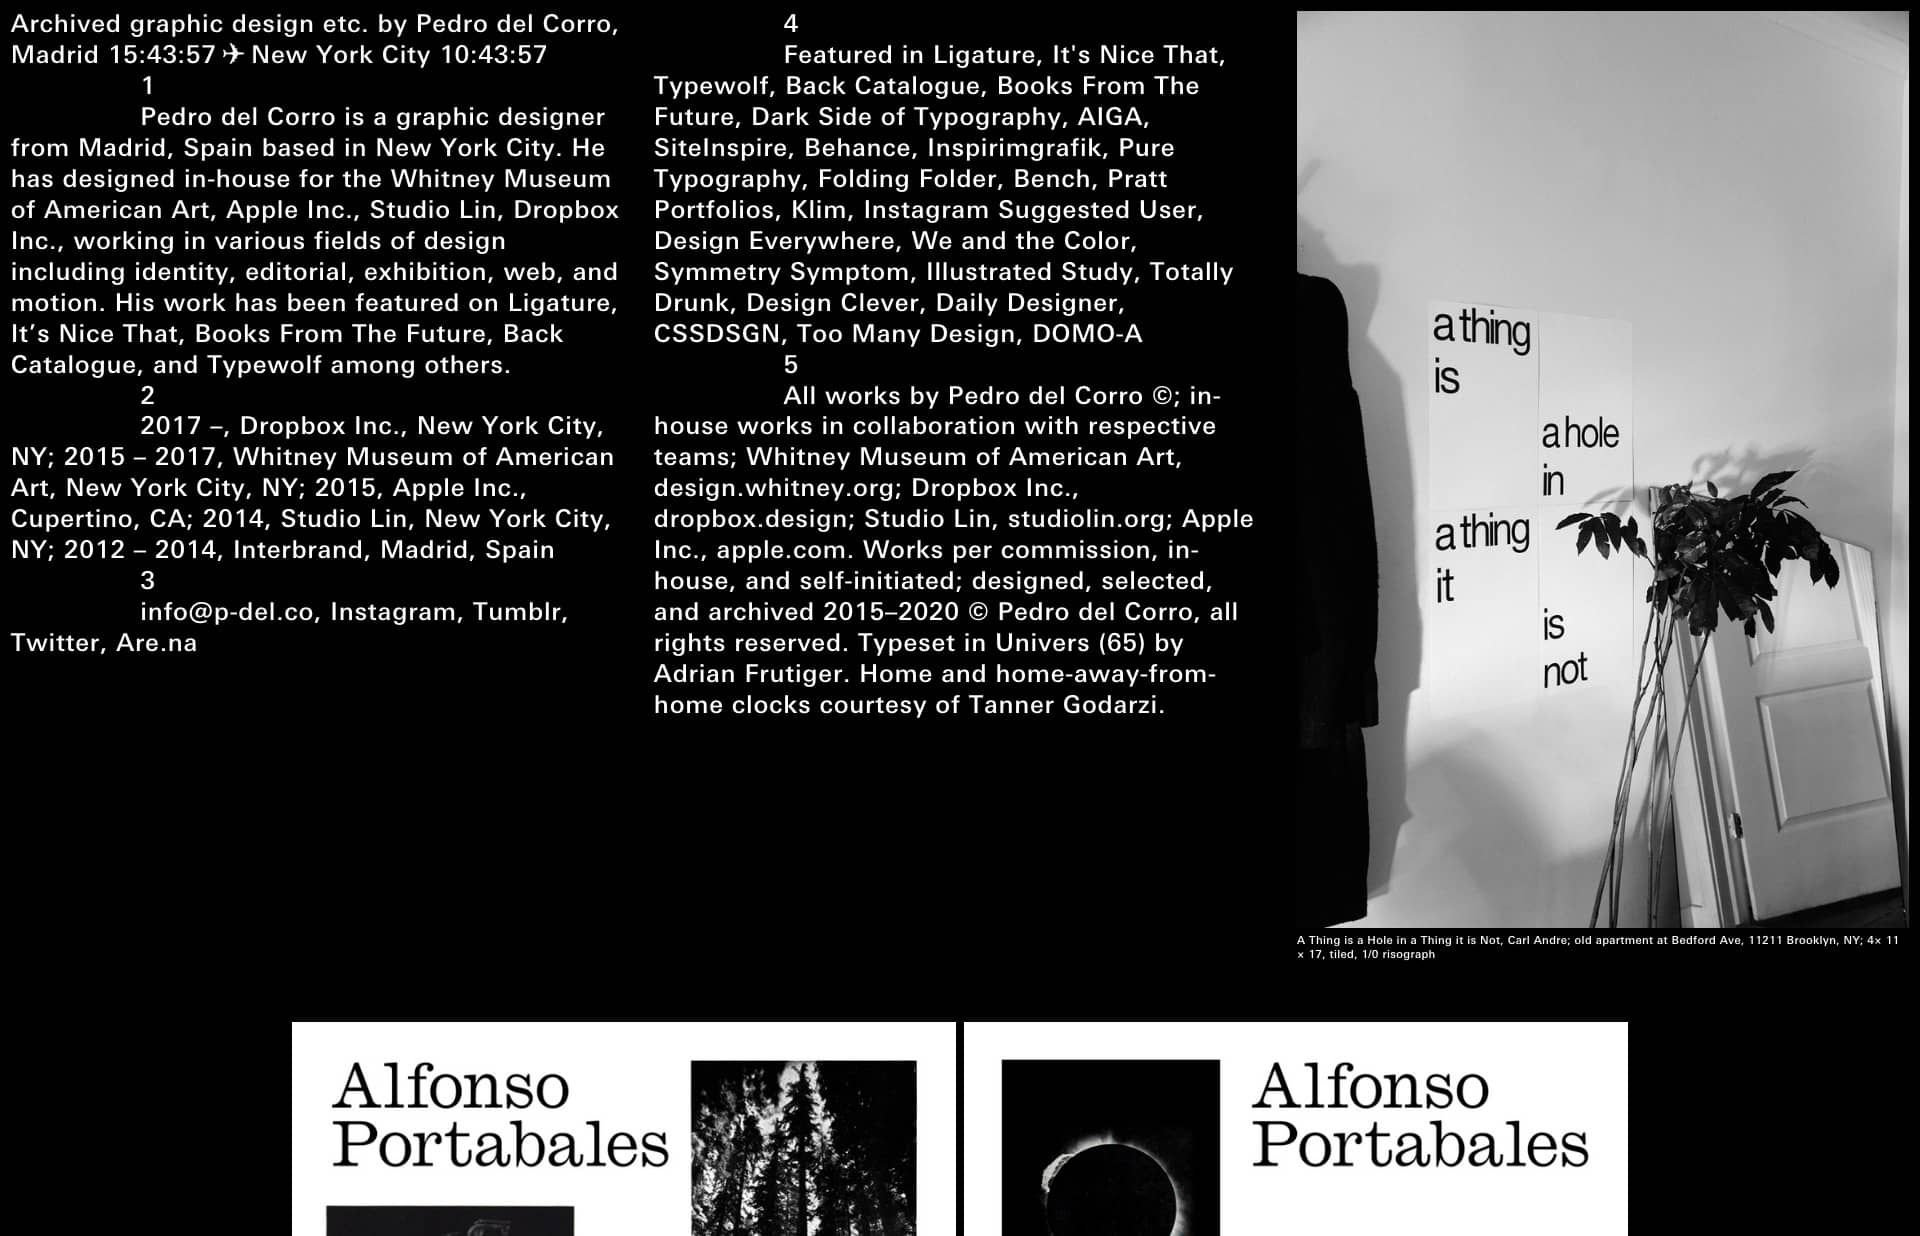 Screenshot of the website Pedro del Corro, featured on The Gallery, a curated collection of minimal websites